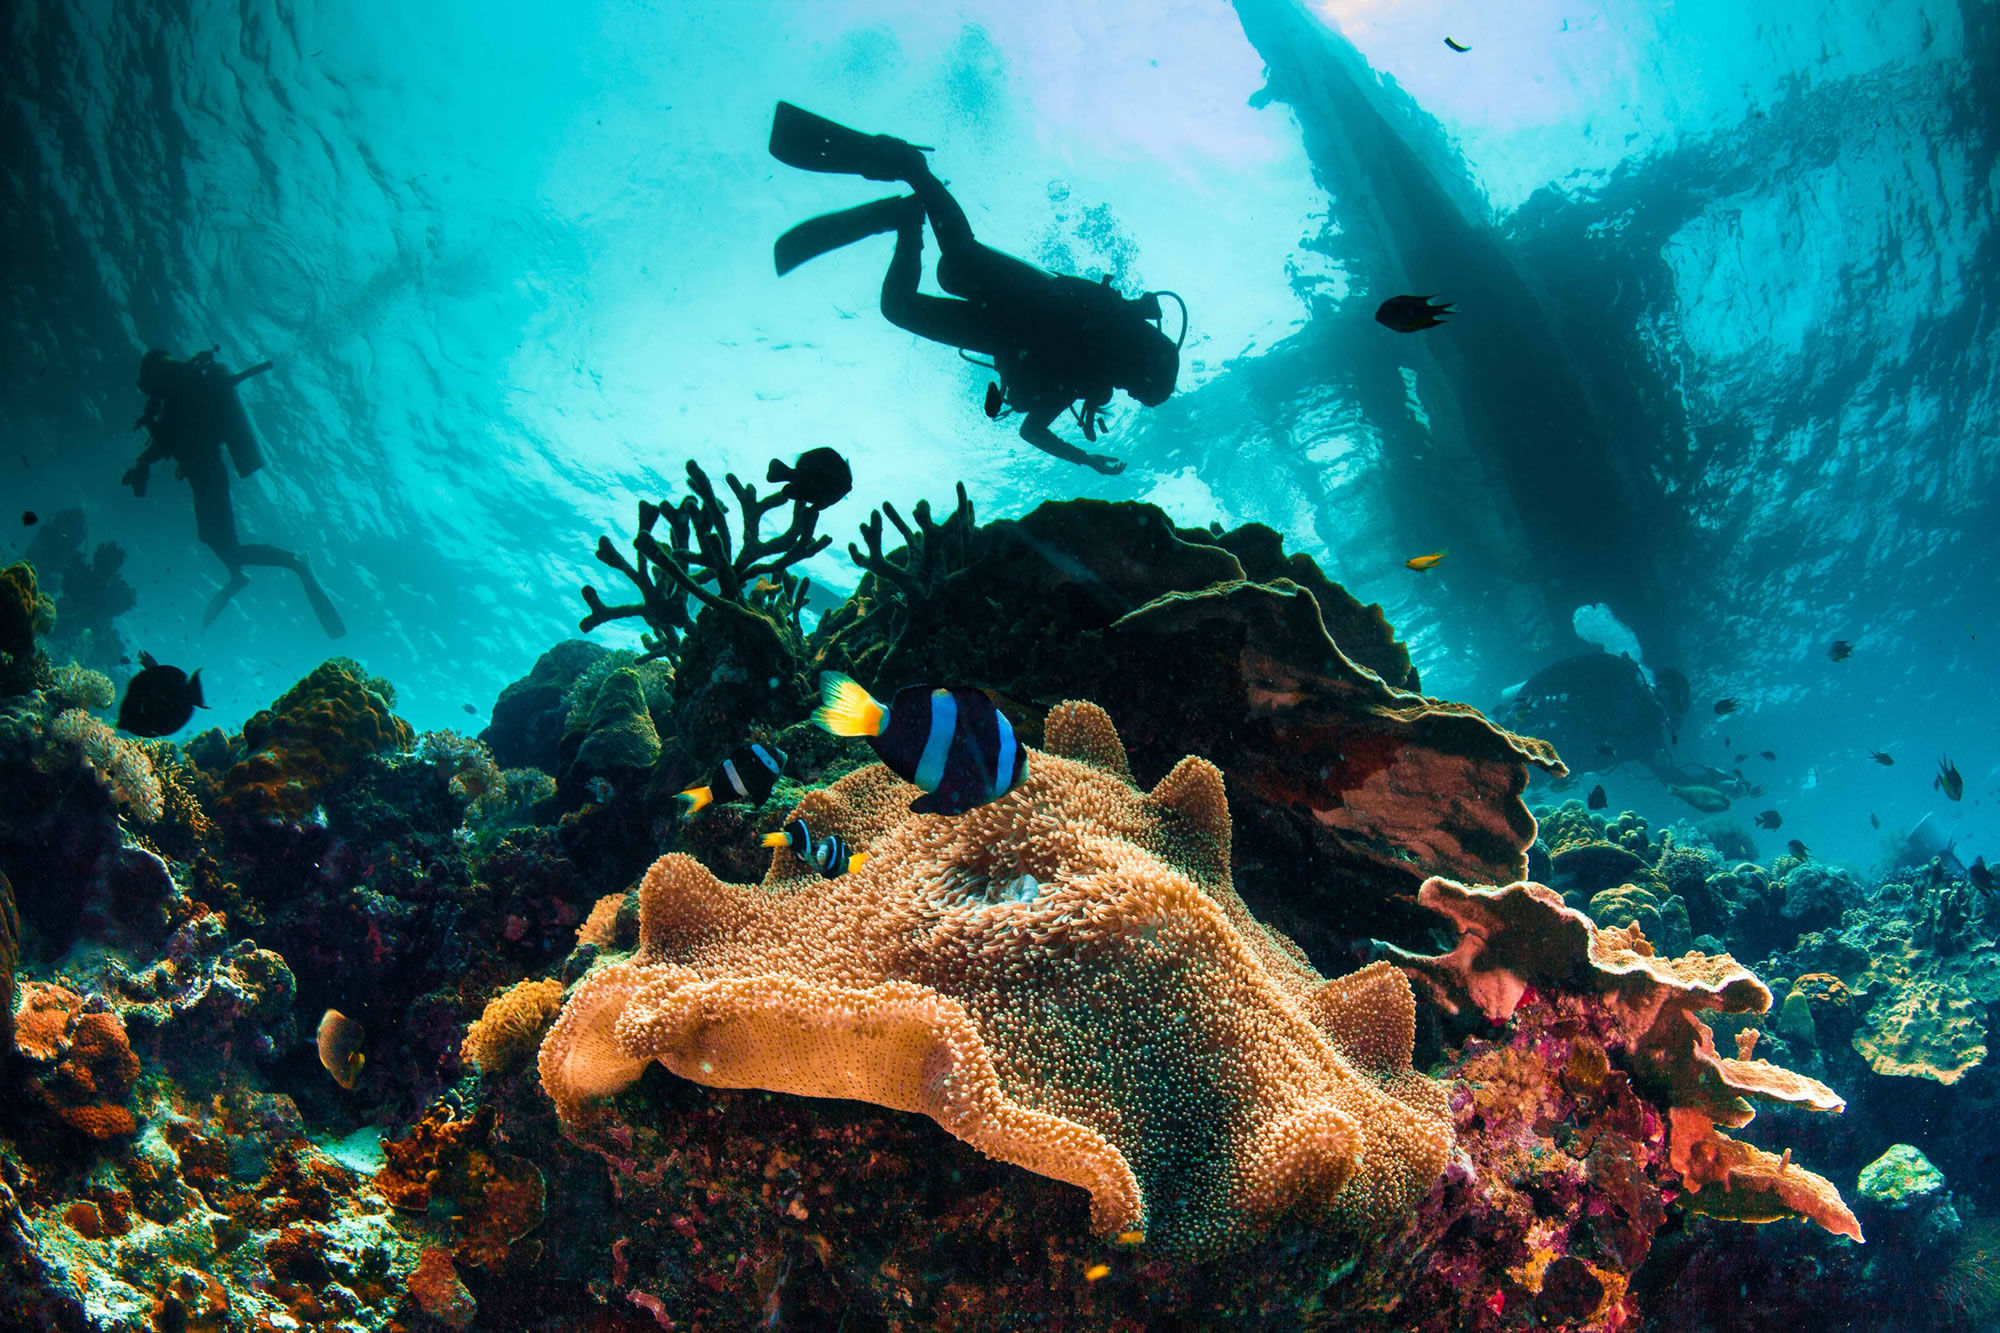 Scuba Diving: The Next Item to Cross off Your List